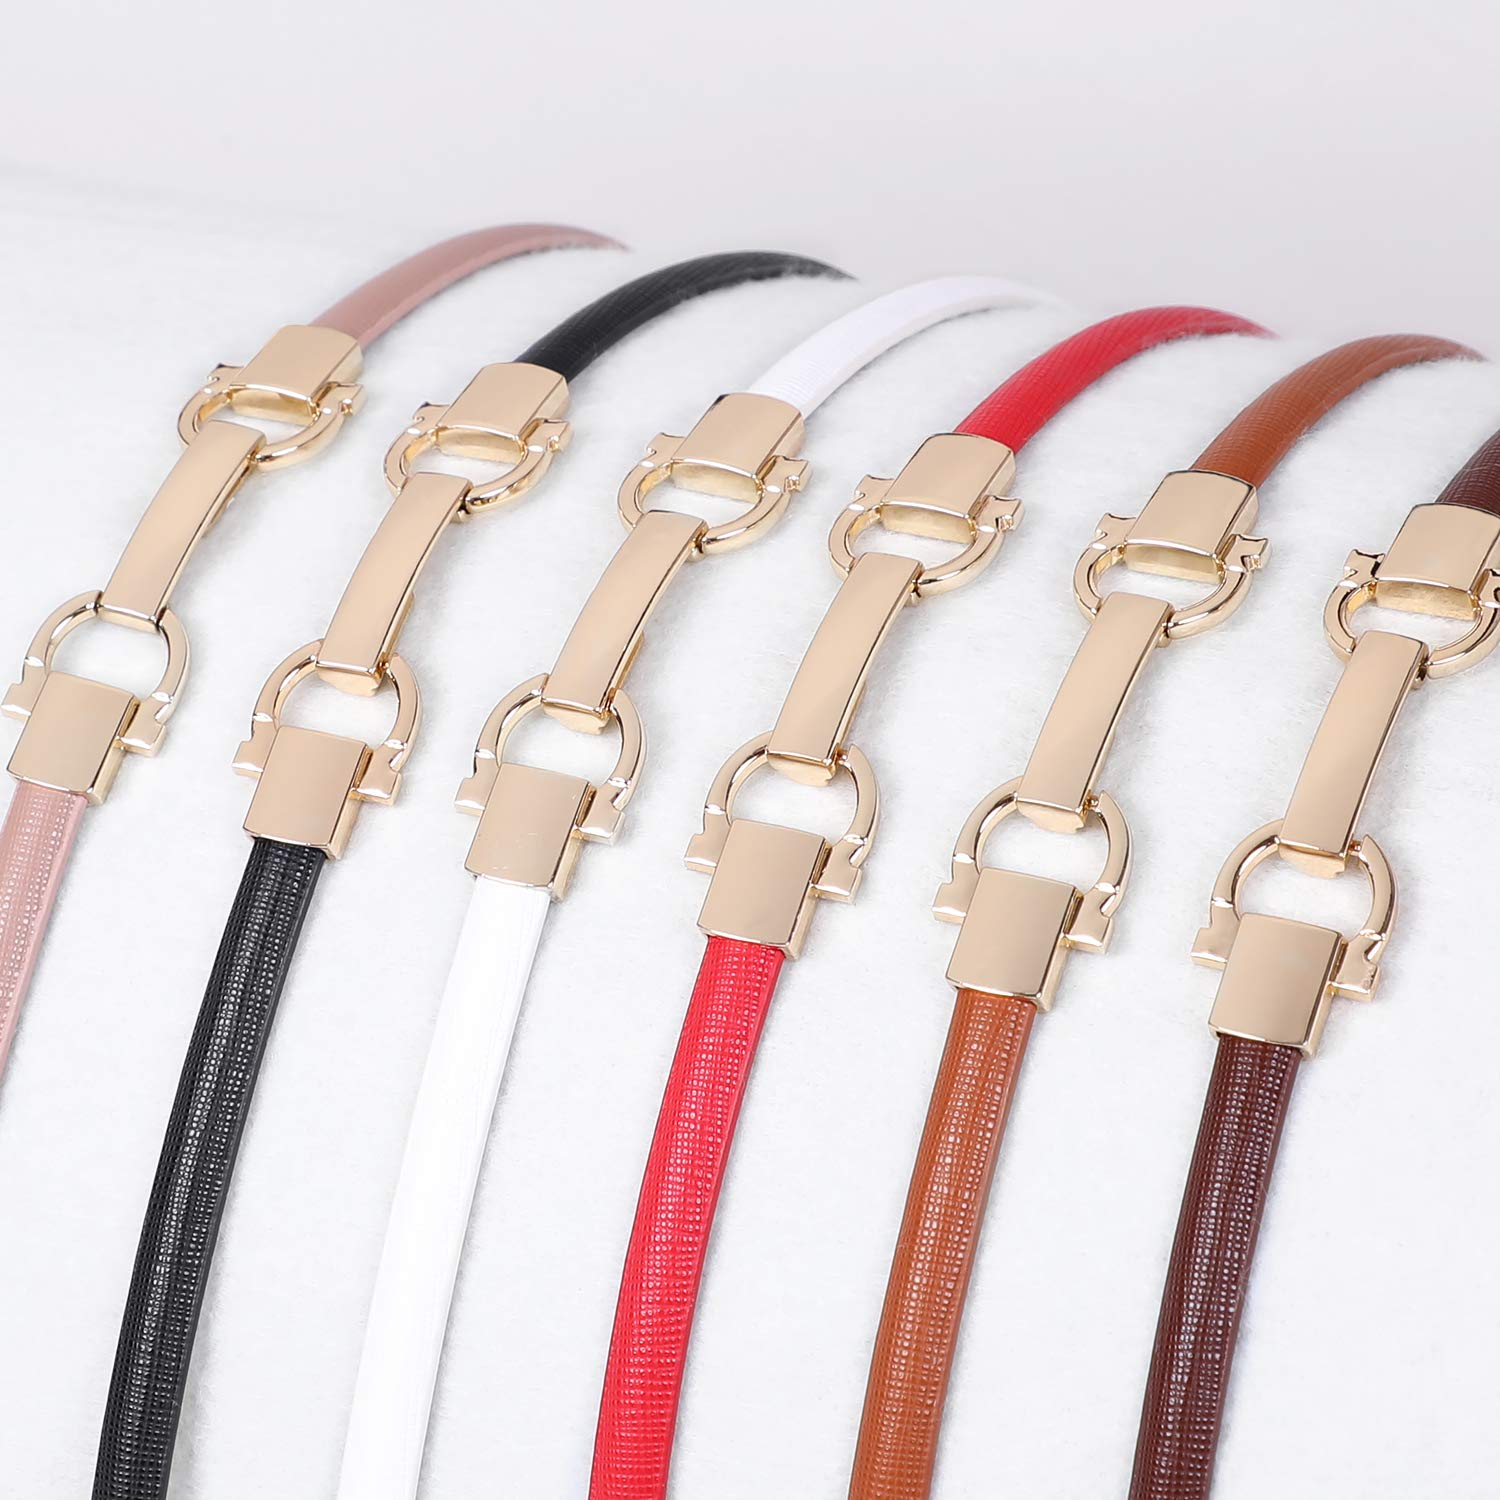 Women Skinny Leather Belt for Dress Adjustable Ladies Girls Thin Waist Belt with 6 Colors by WHIPPY